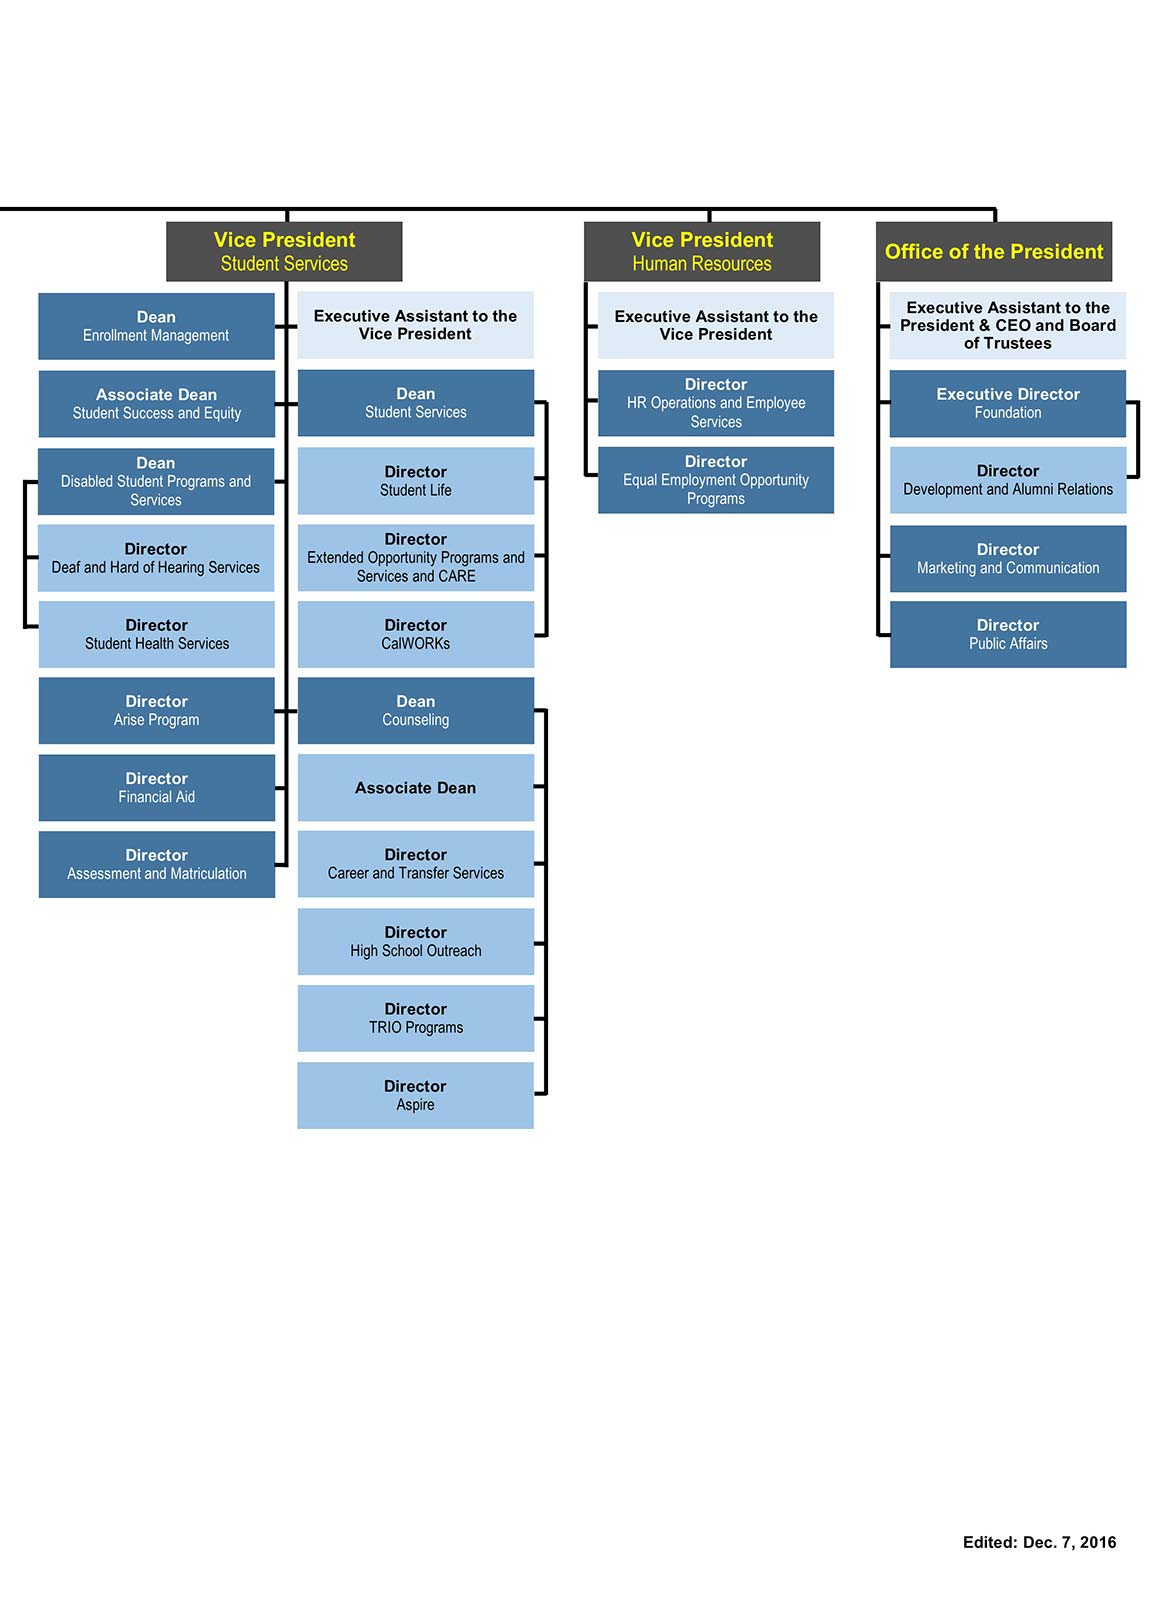 Org Chart Image 2 of 2